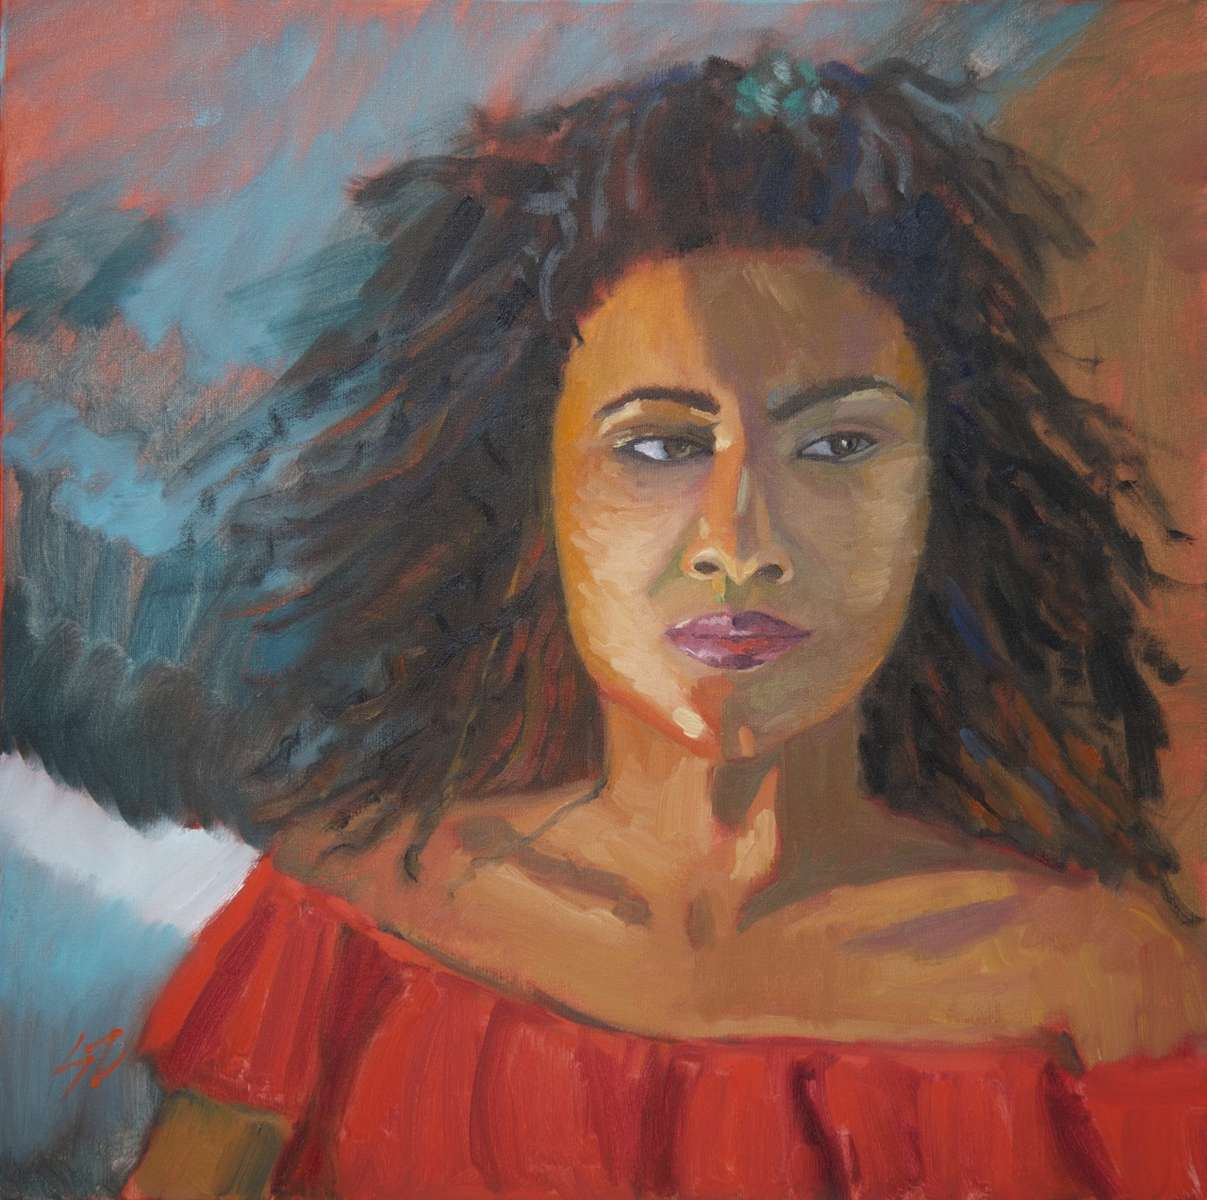 24x24{quote} oil on canvas© S'zanne ReynoldsPrivate Collection in Tallahassee, Florida